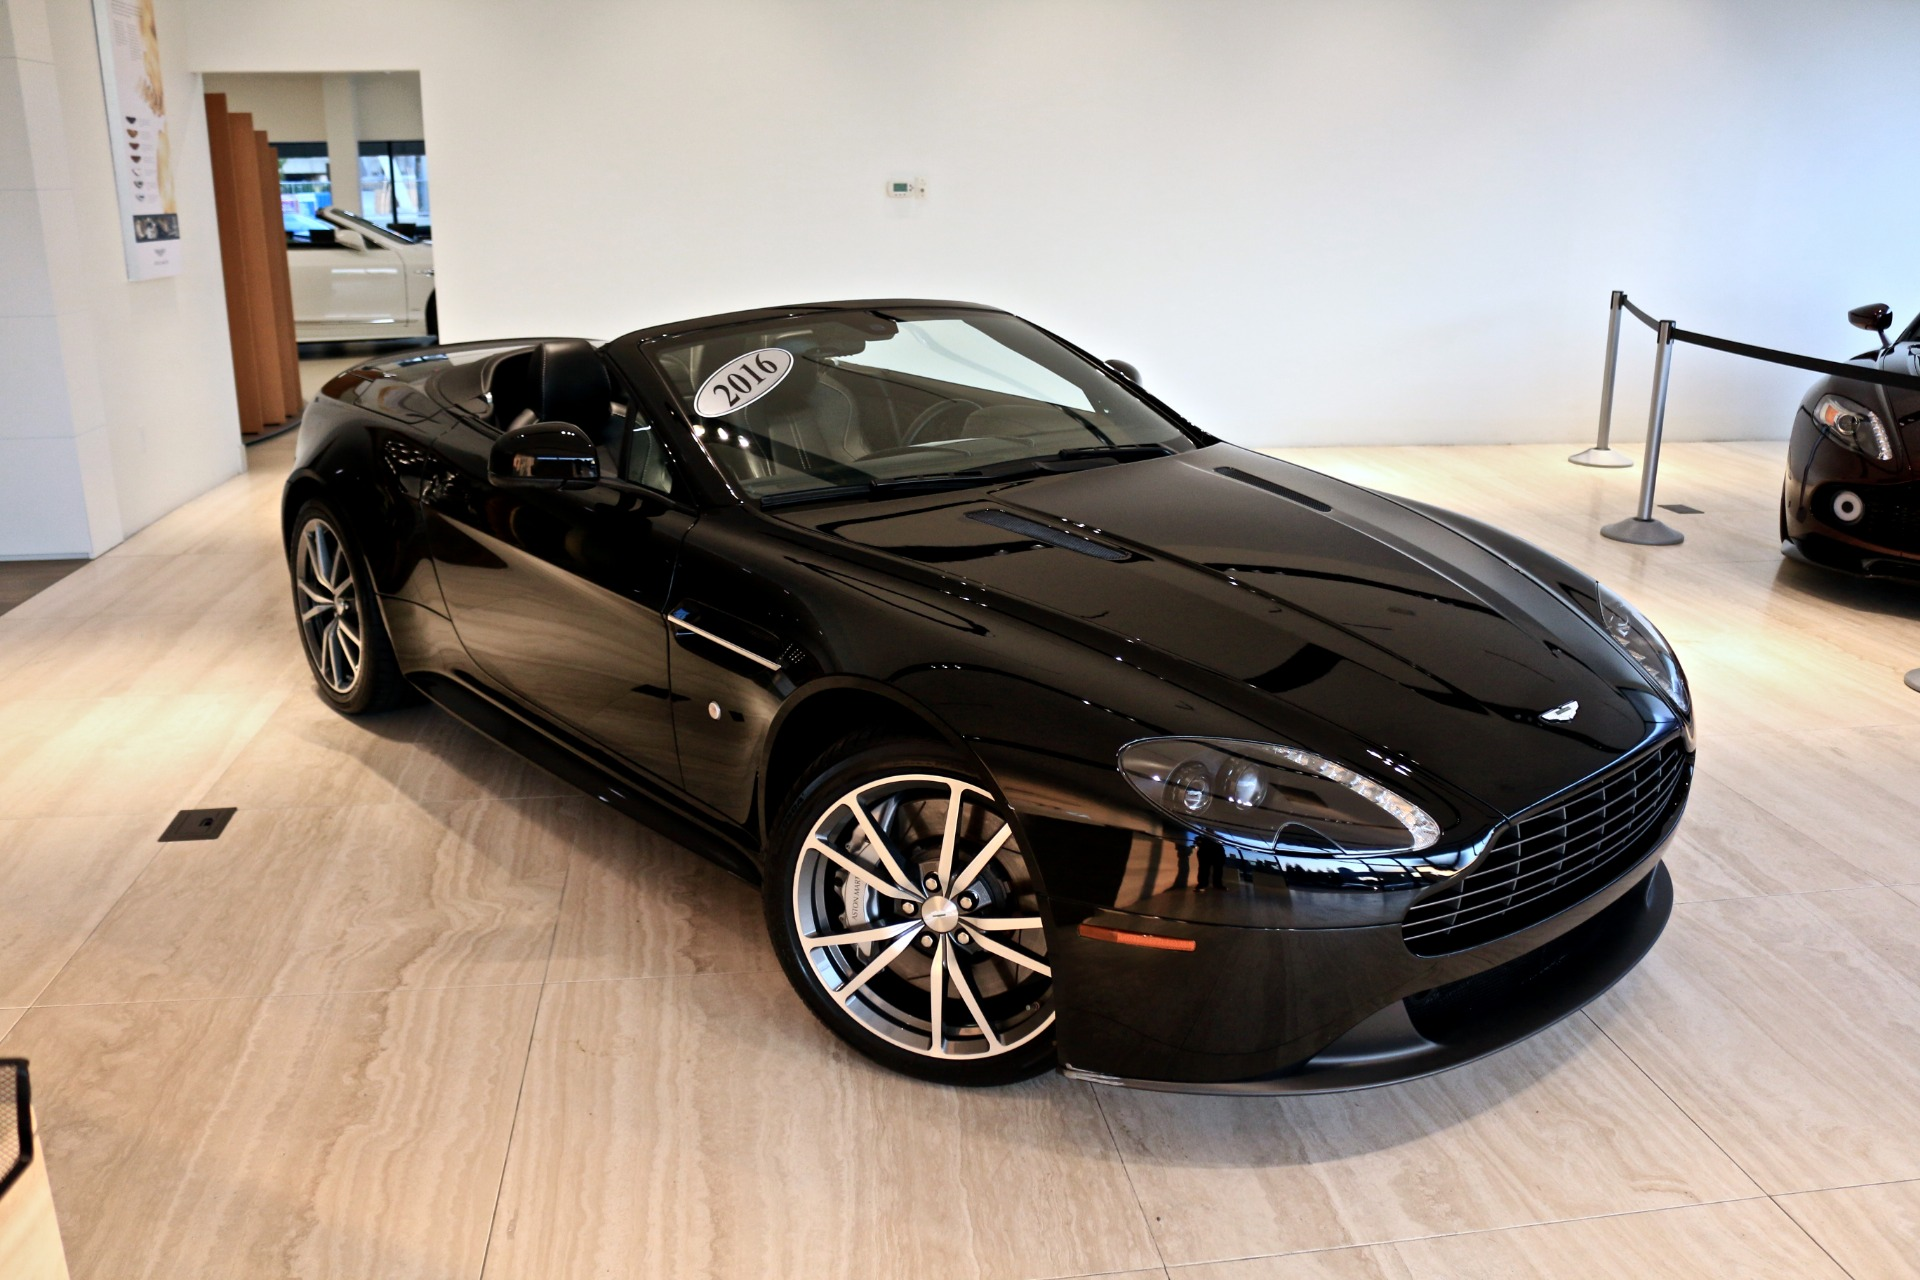 Aston Martin V Vantage GT Roadster Stock NNA For Sale - Aston martin gt